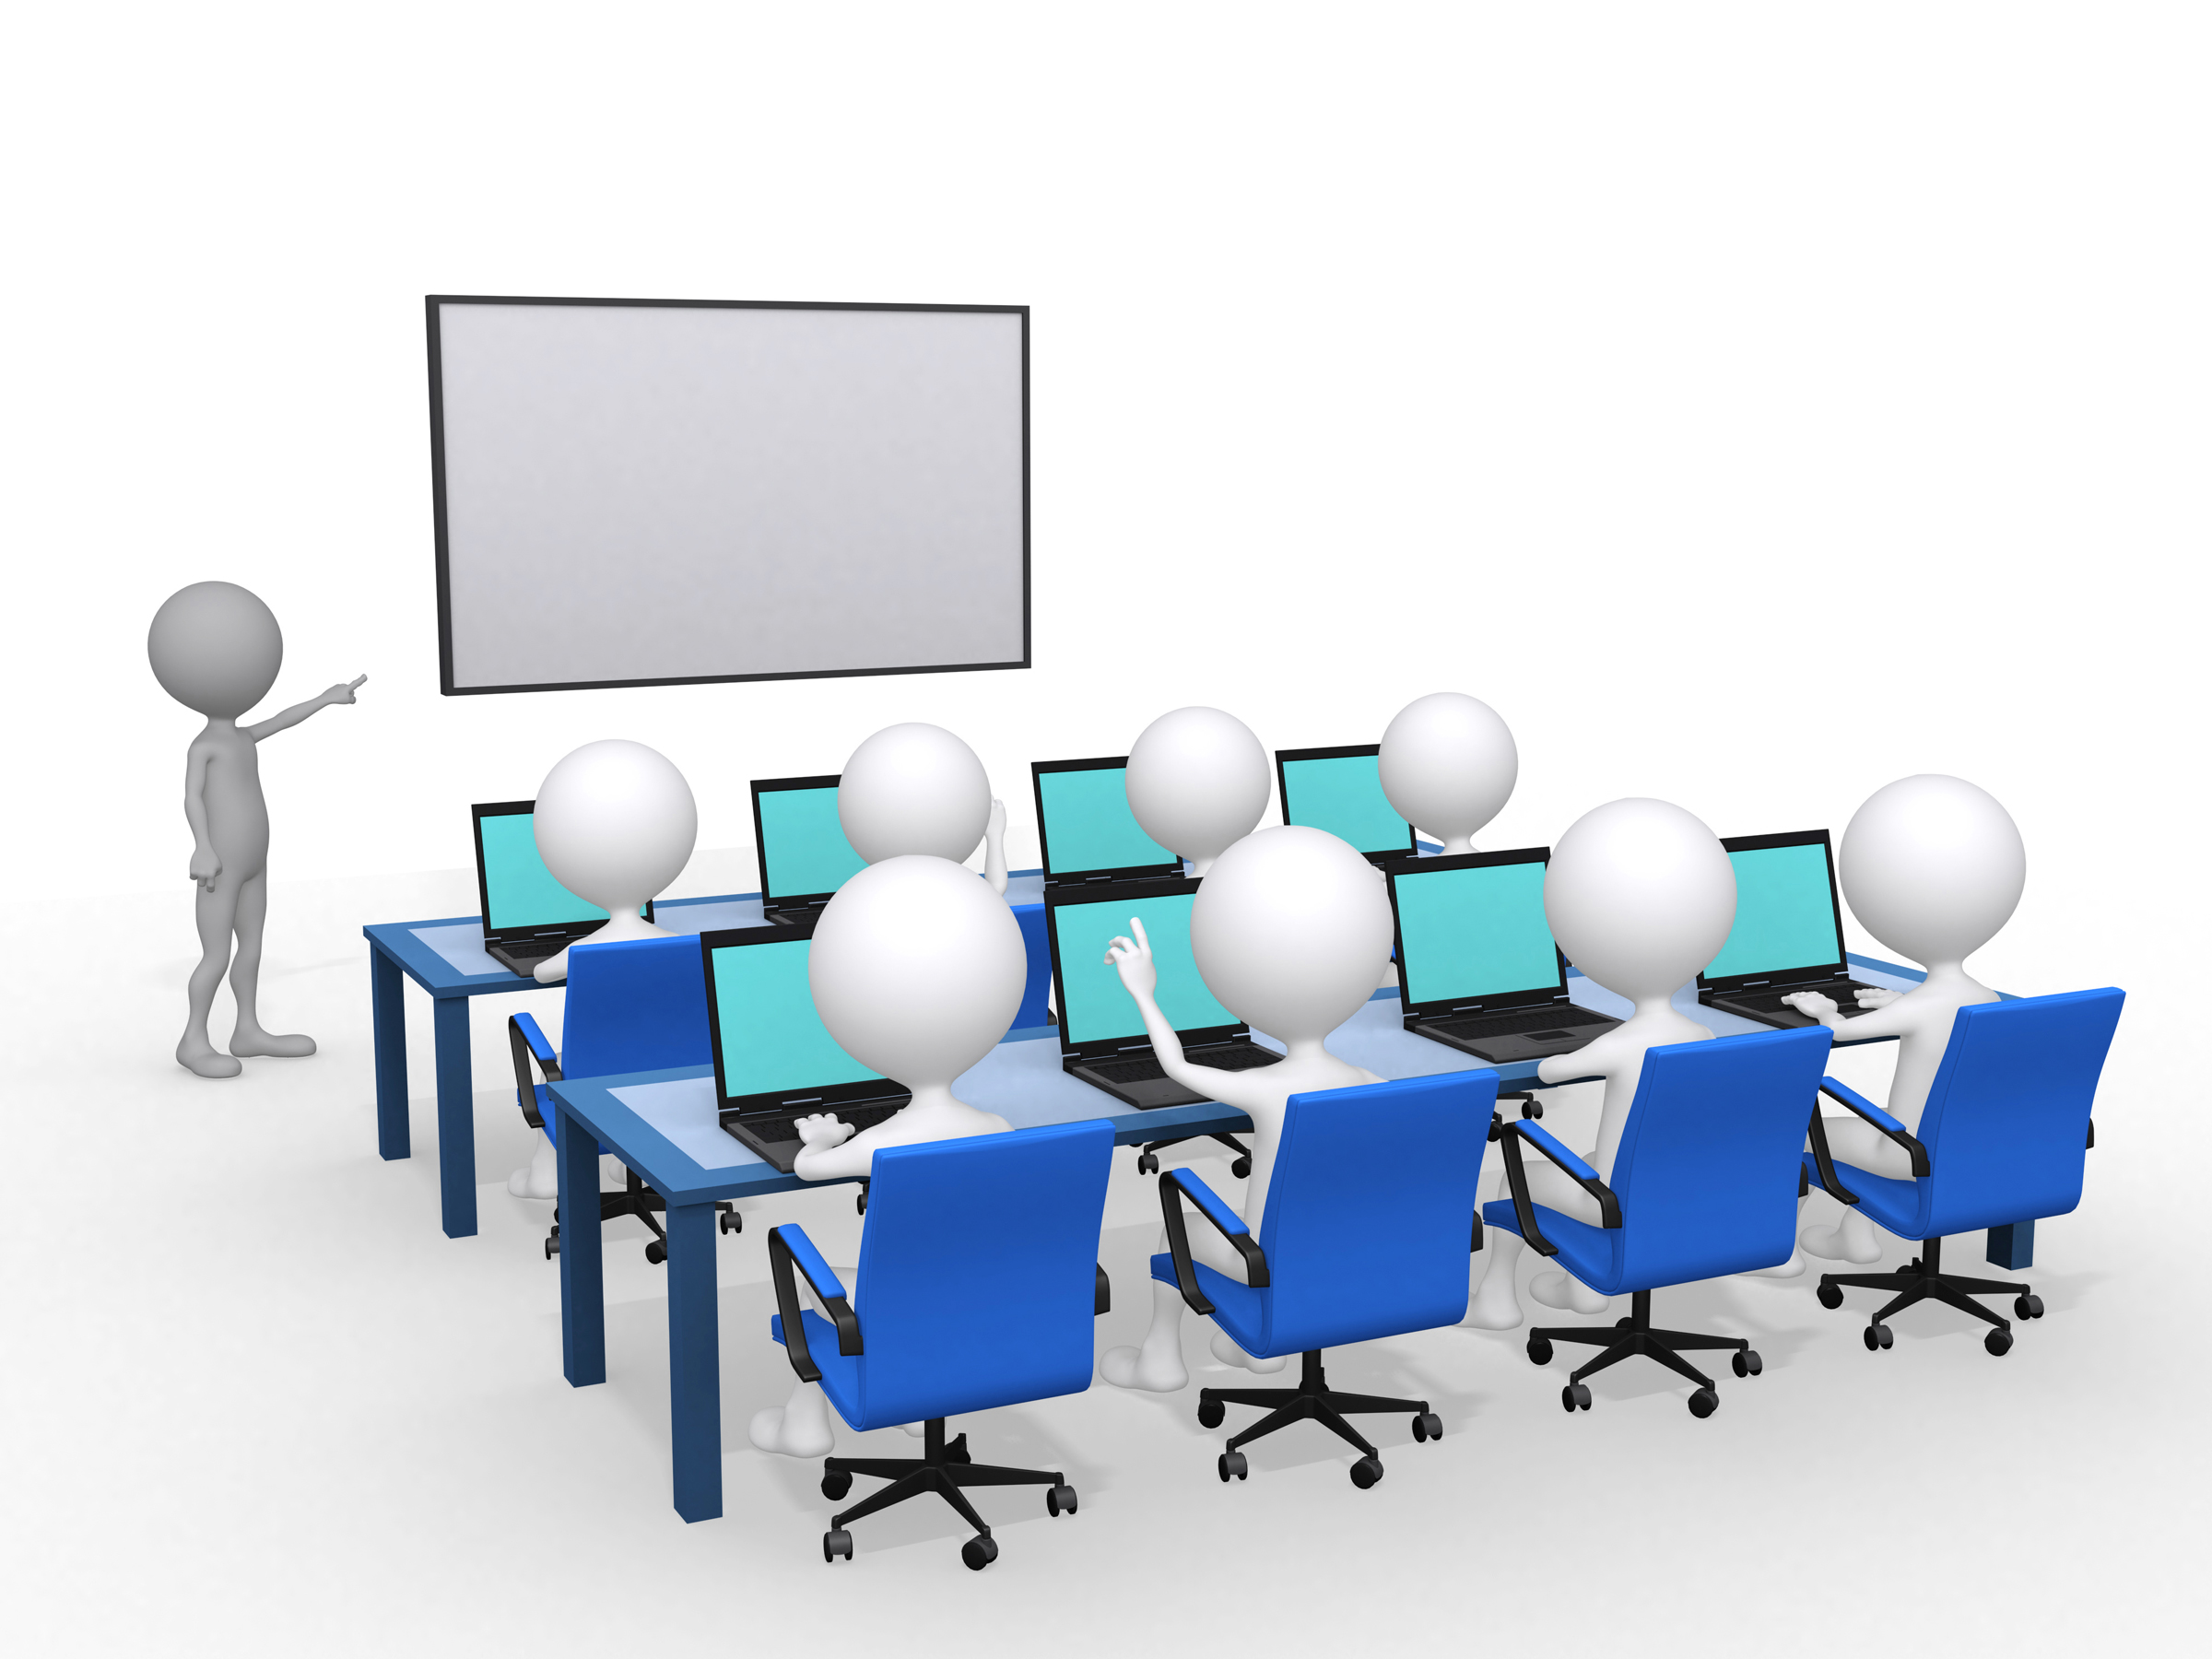 Training room clipart image library stock Free Training Center Cliparts, Download Free Clip Art, Free ... image library stock